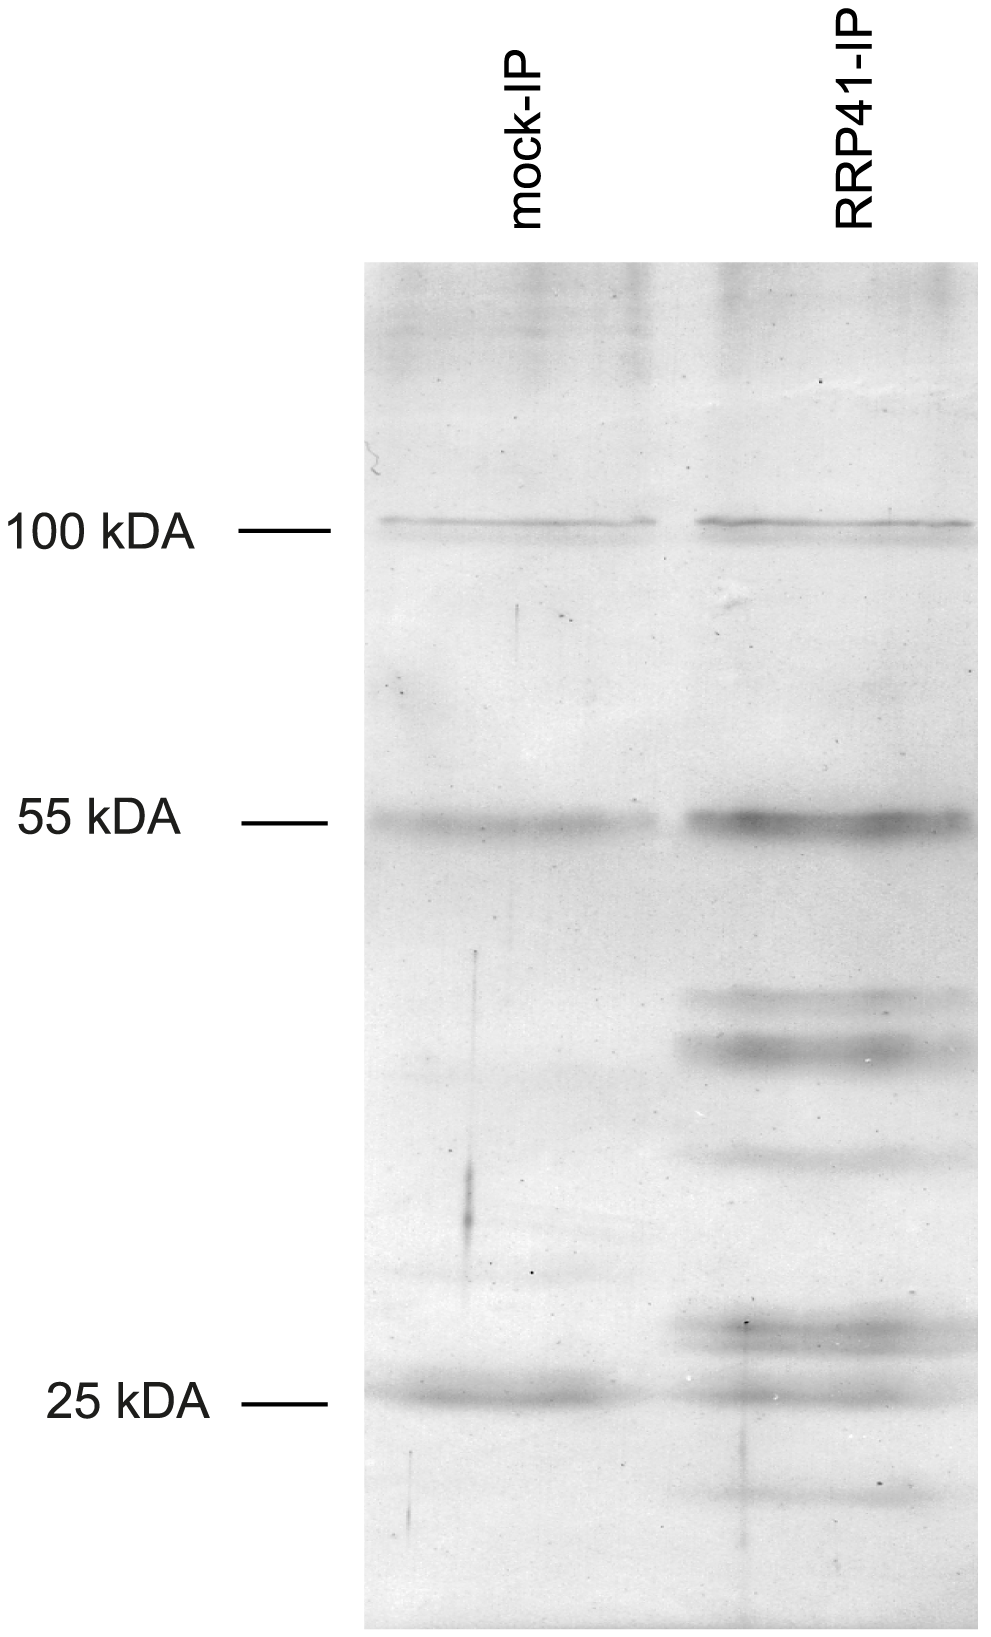 Purification of exosome complexes.